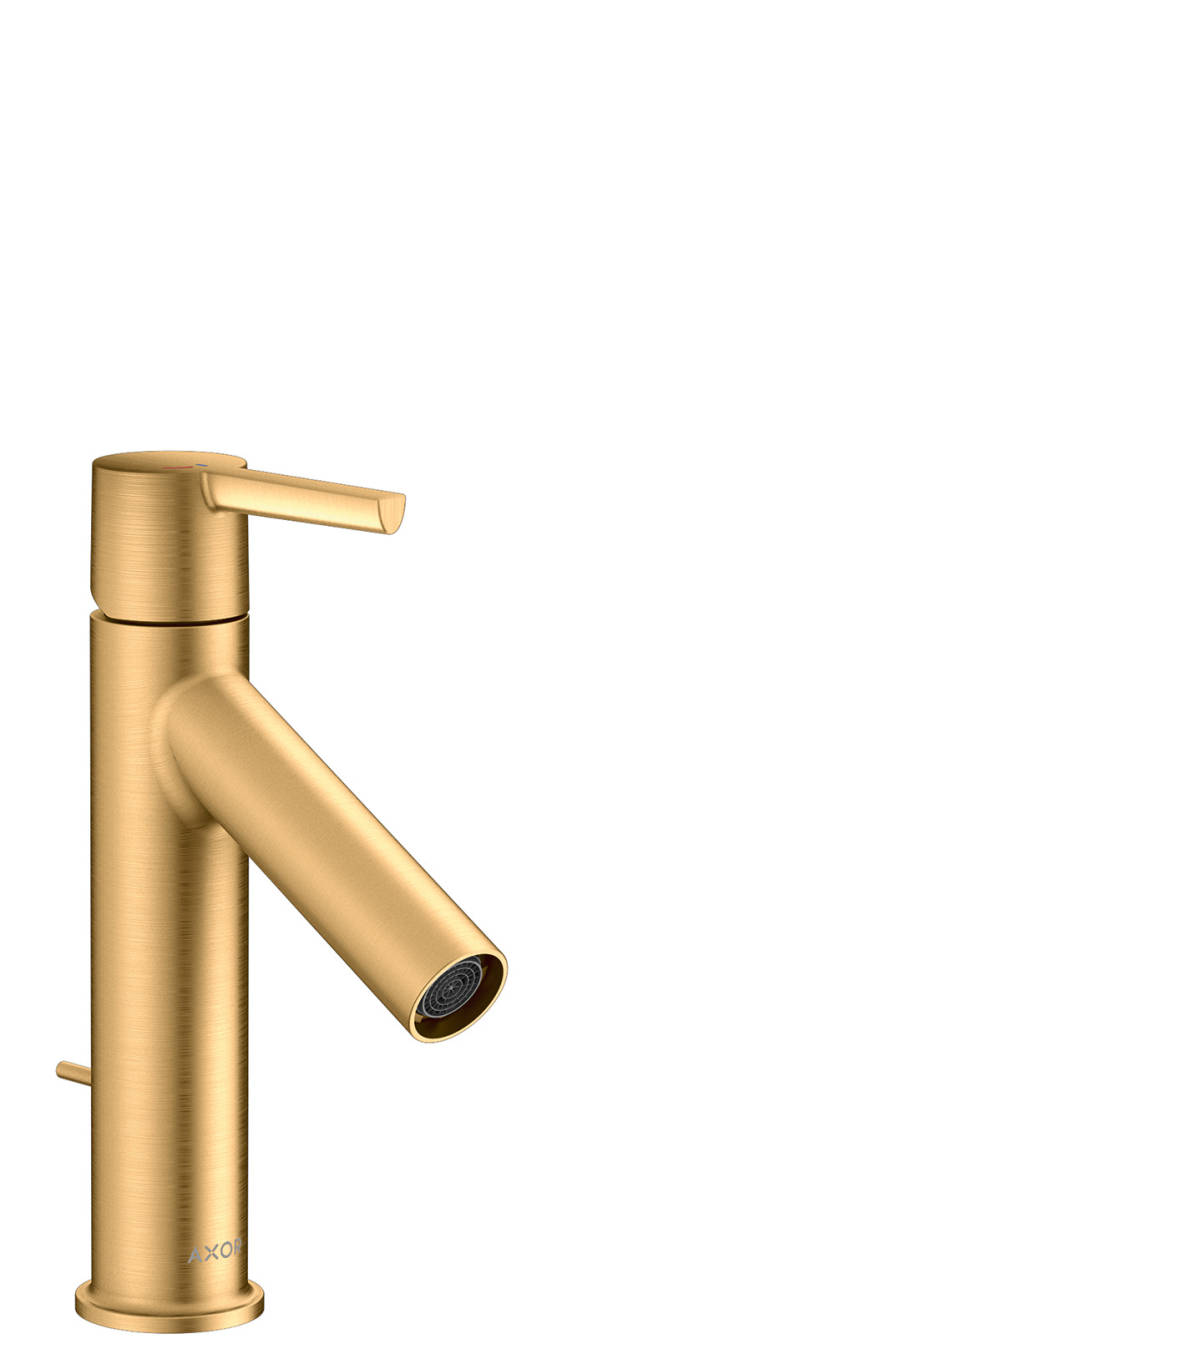 Single lever basin mixer 100 CoolStart with lever handle and pop-up waste set, Brushed Brass, 10007950